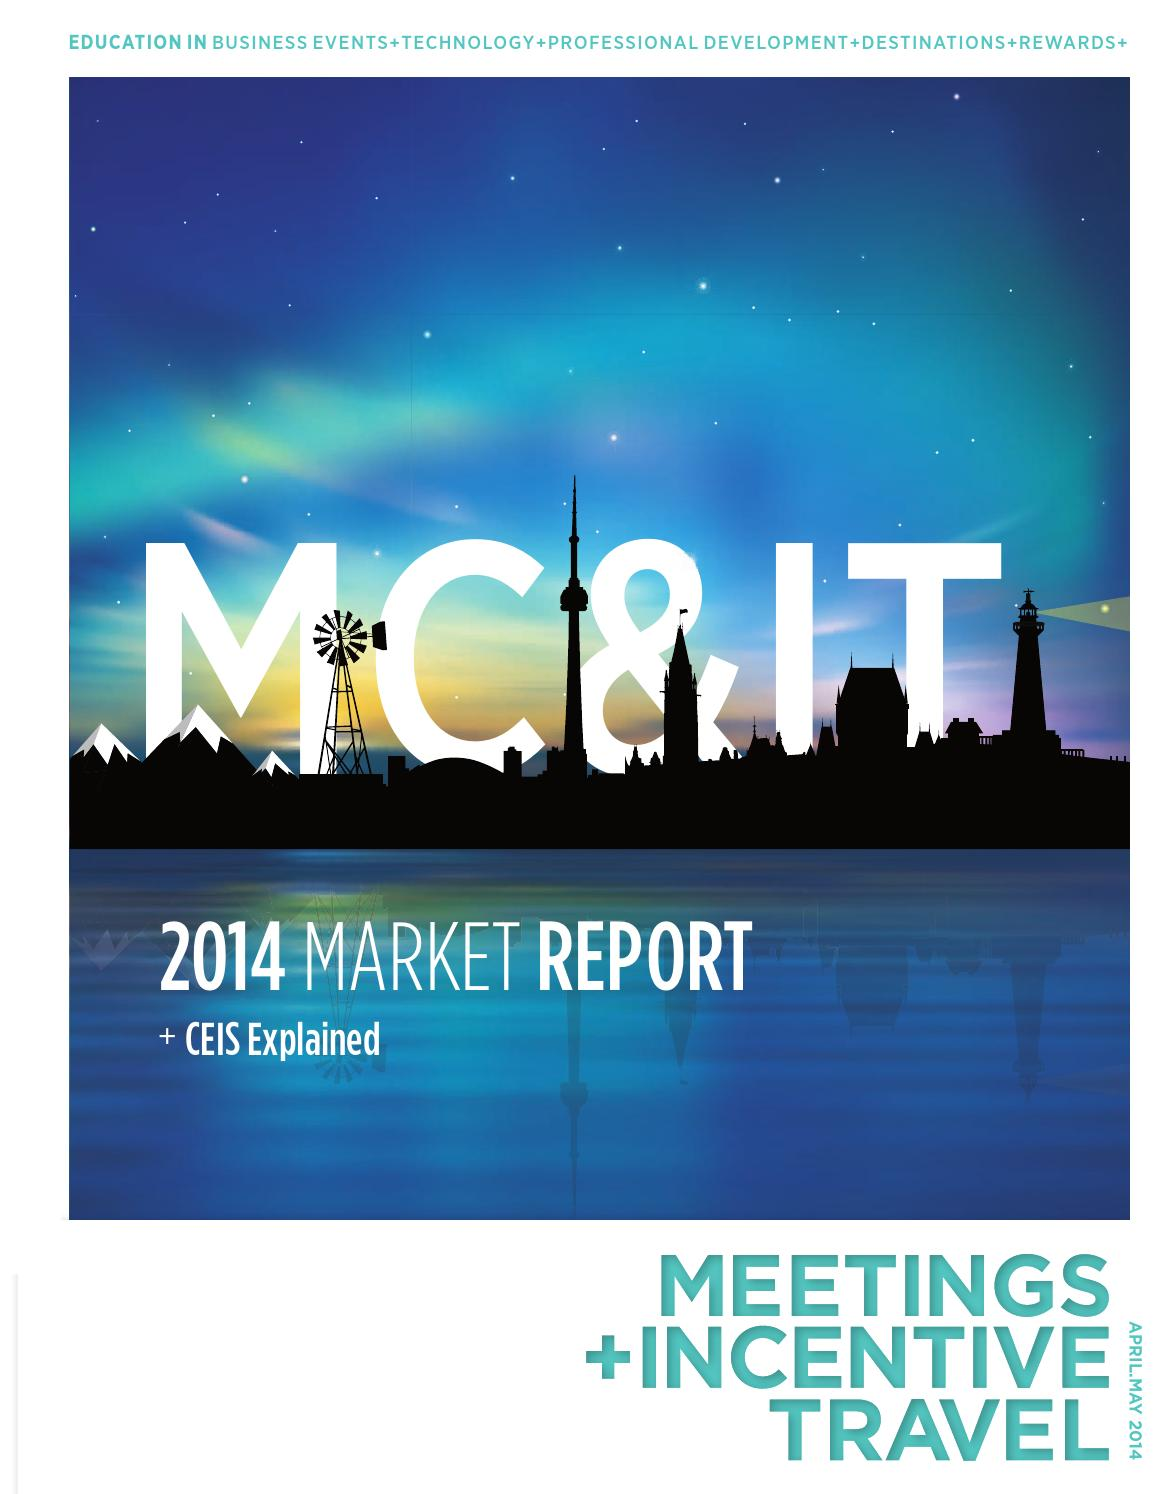 Meetings + Incentive Travel April.May 2014 by Annex-Newcom LP - issuu